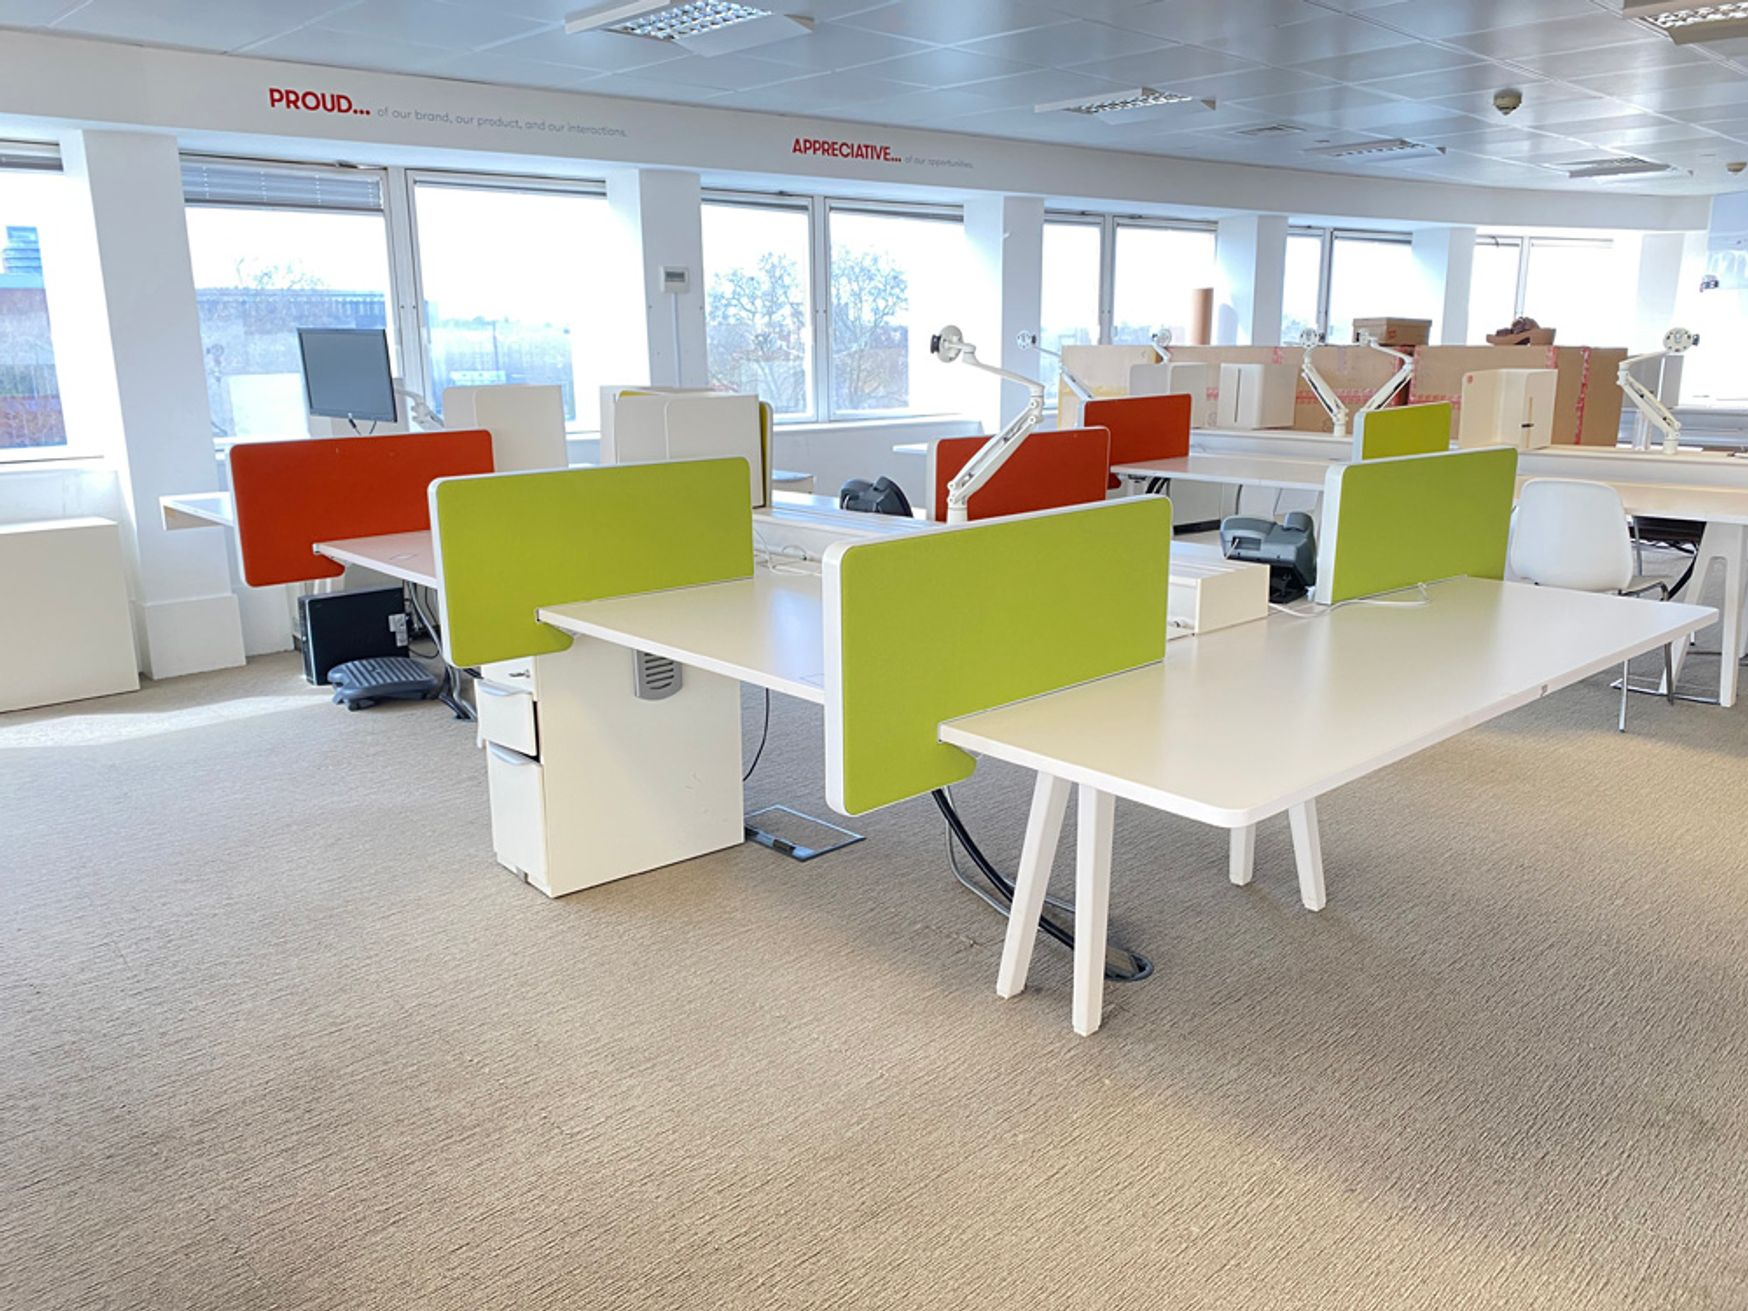 Used Vitra 6-person 'Joyn' desks with an additional extension table to one end. Mixed sized desk widths.